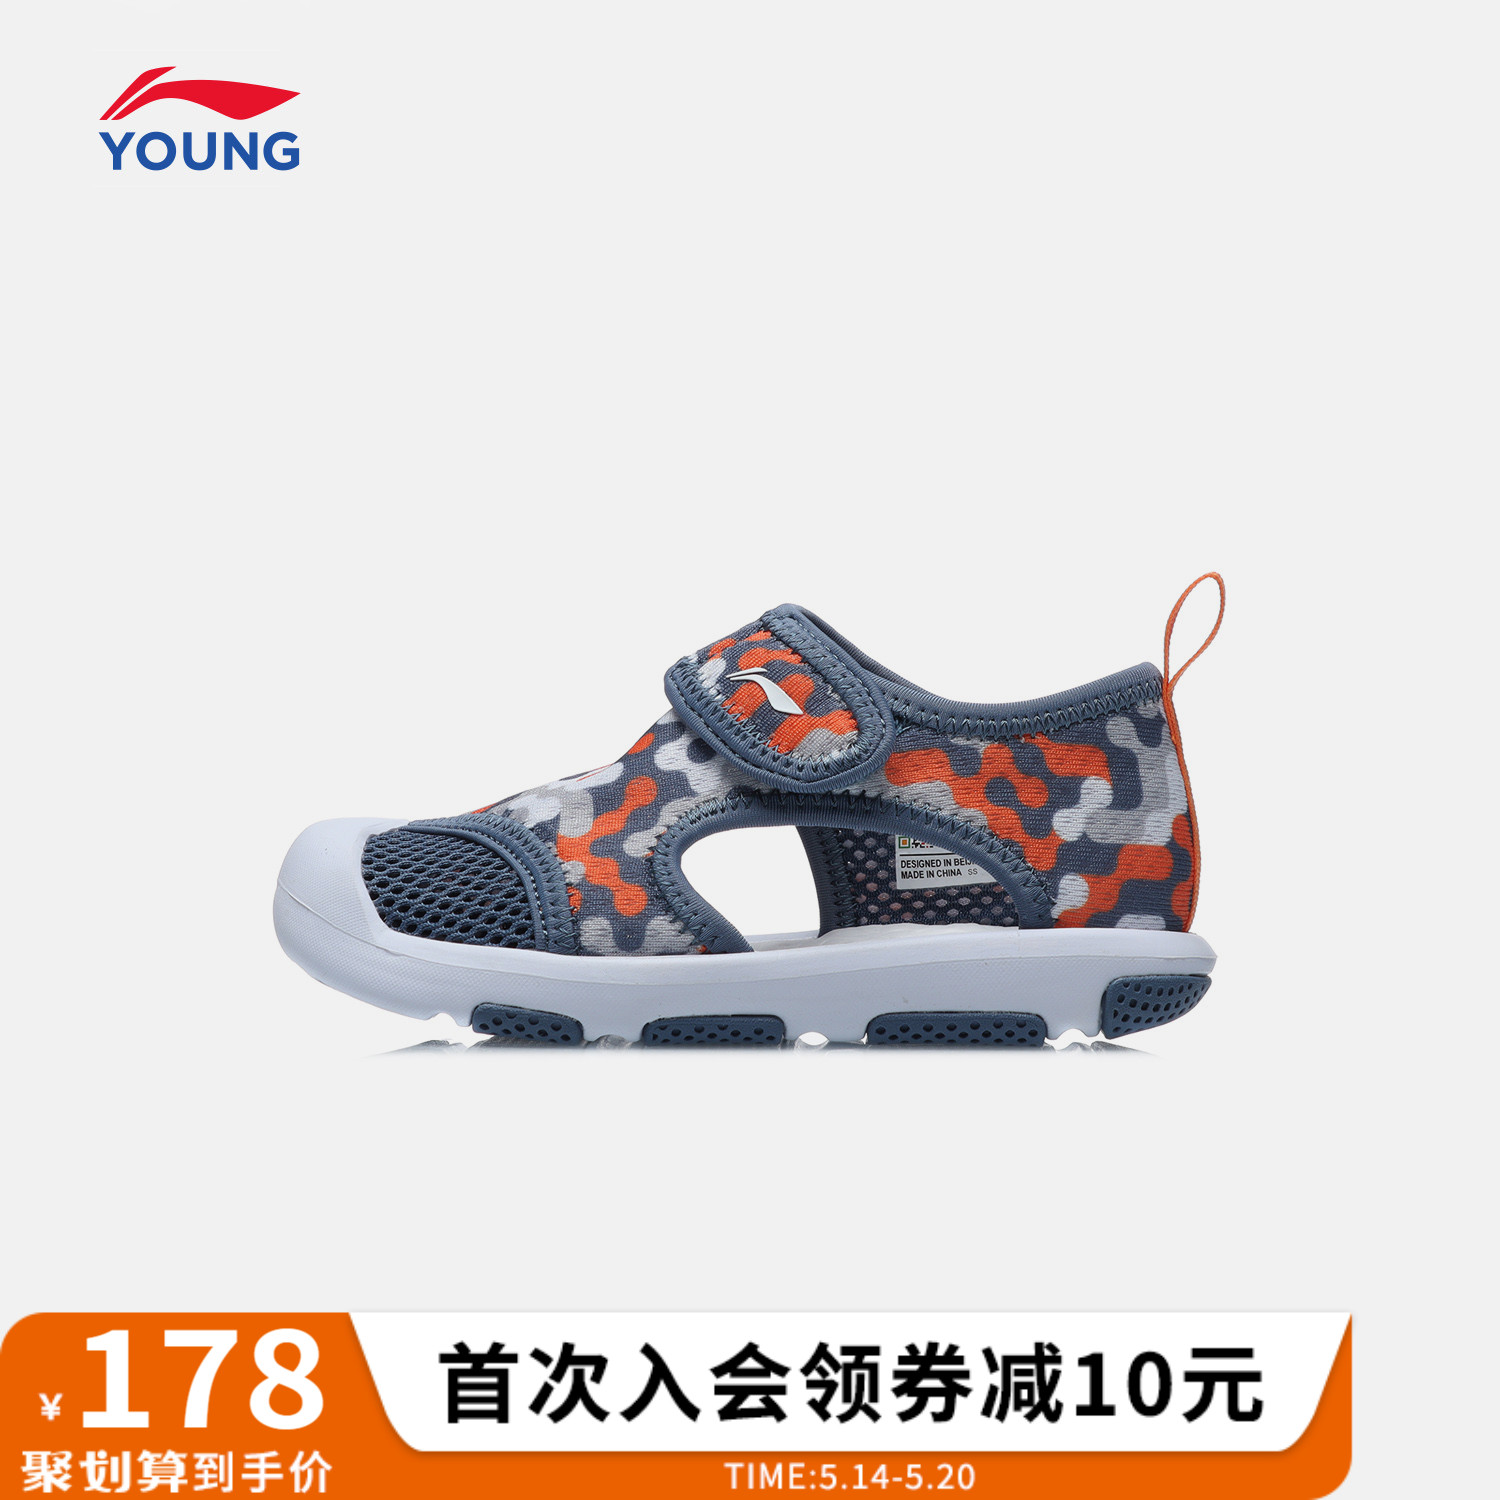 Li Ning children's shoes for boys and girls 3-6 years old sandals new light camouflage summer sports shoes